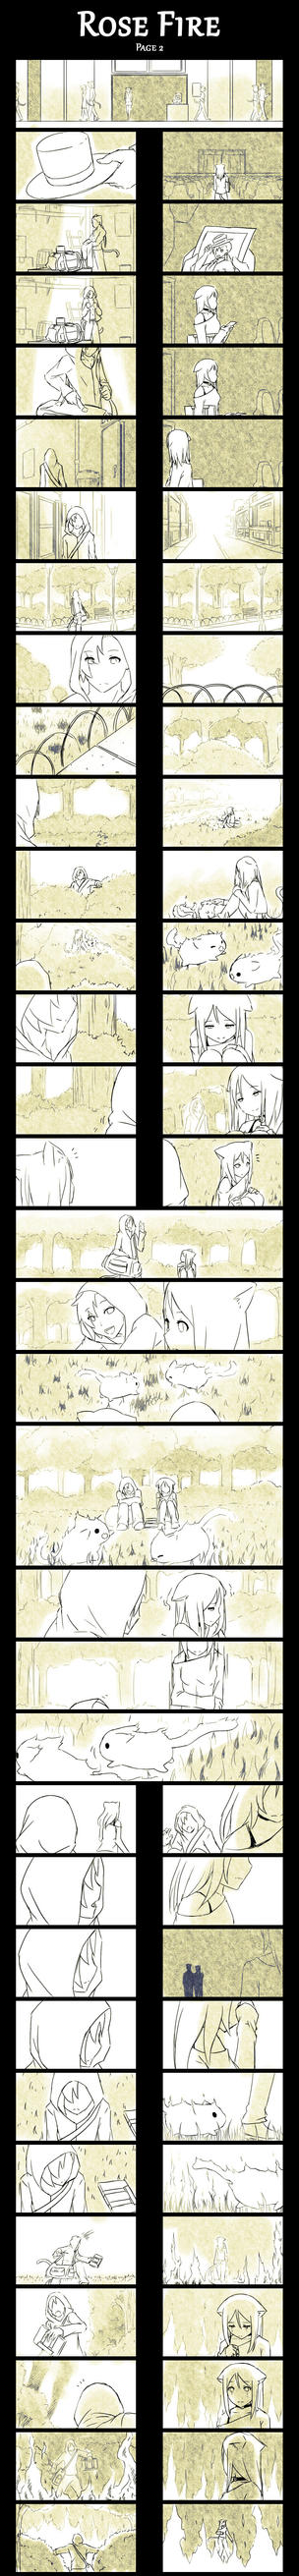 Rose Fire :Page 2: by Mikeinel